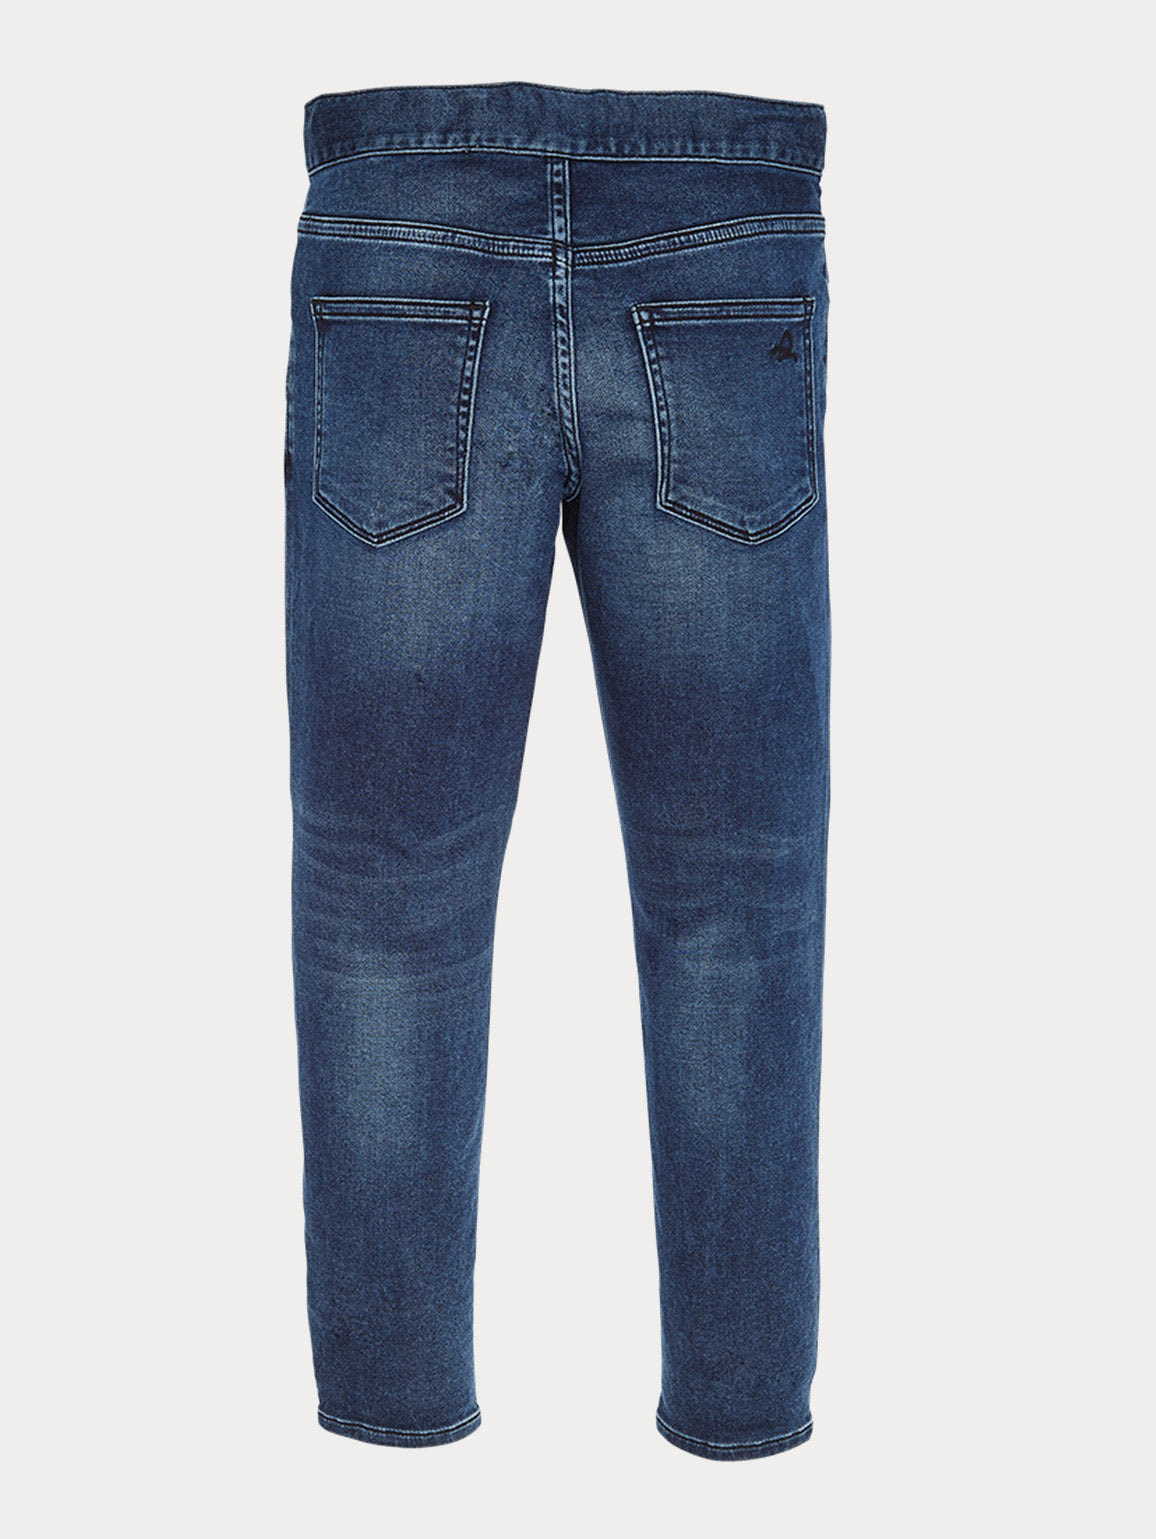 Boys - William Track Chino | Reserve - DL1961